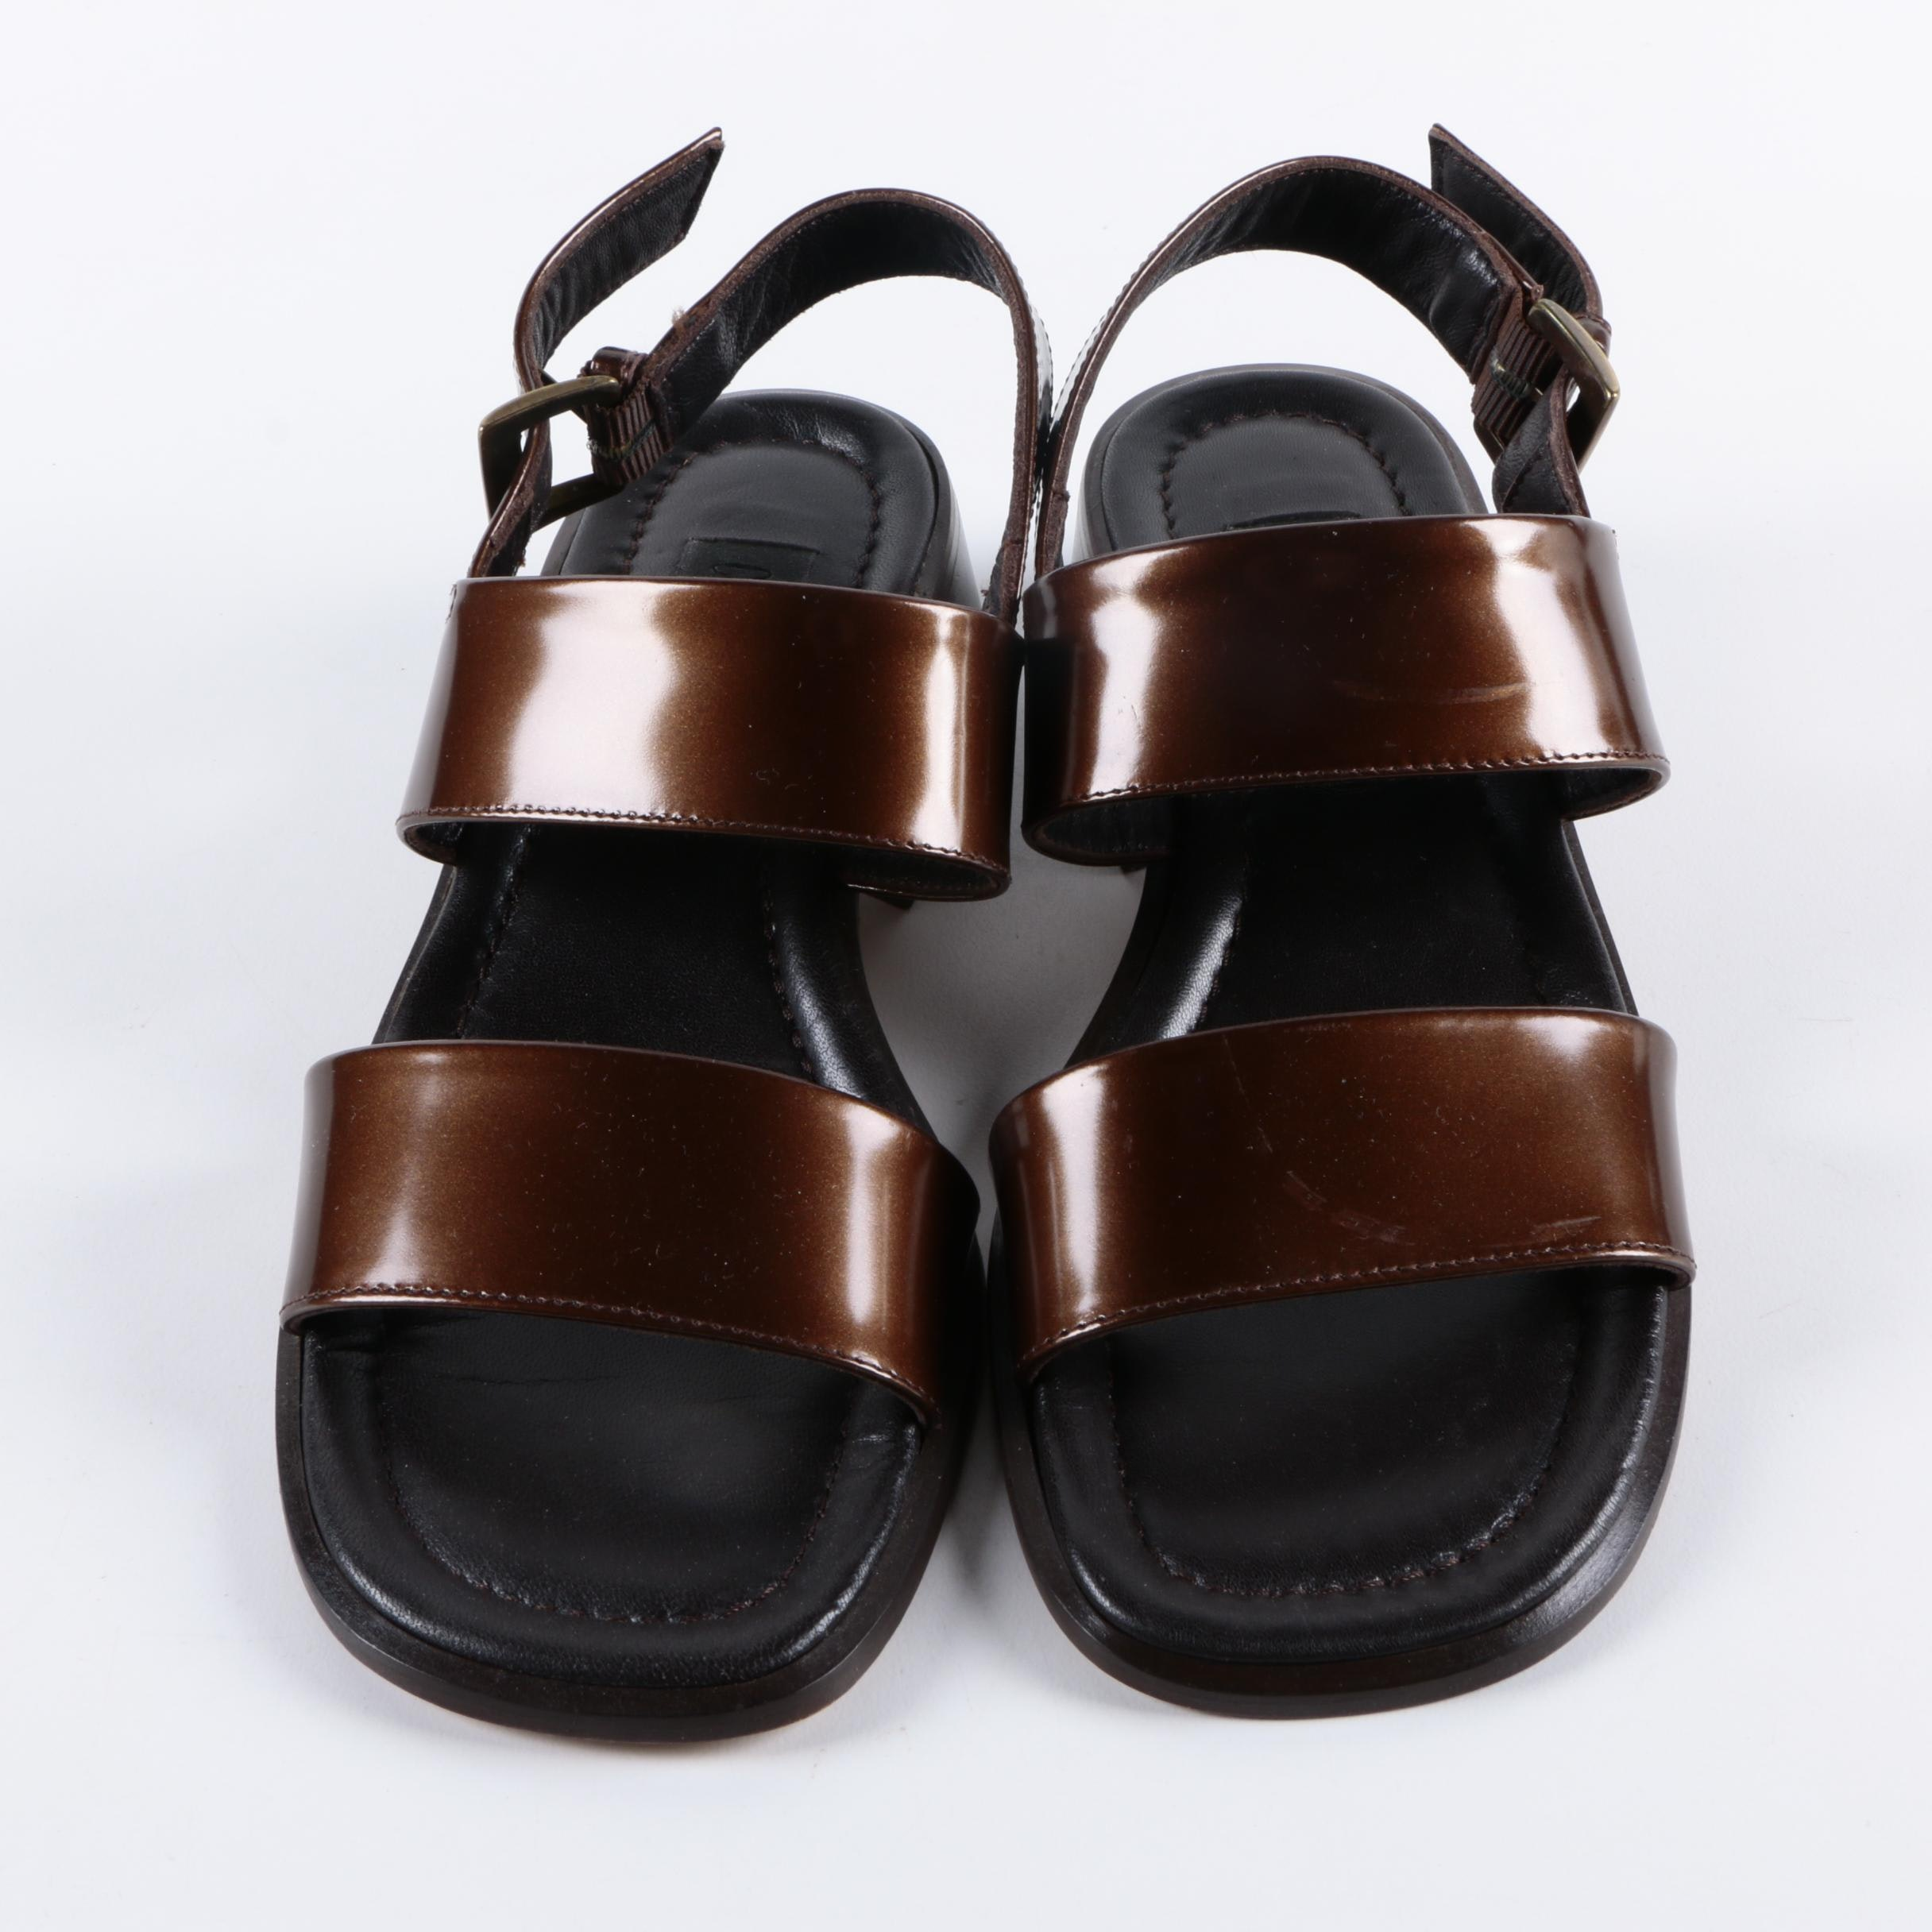 Country Road Marsala Patent Leather Sandals